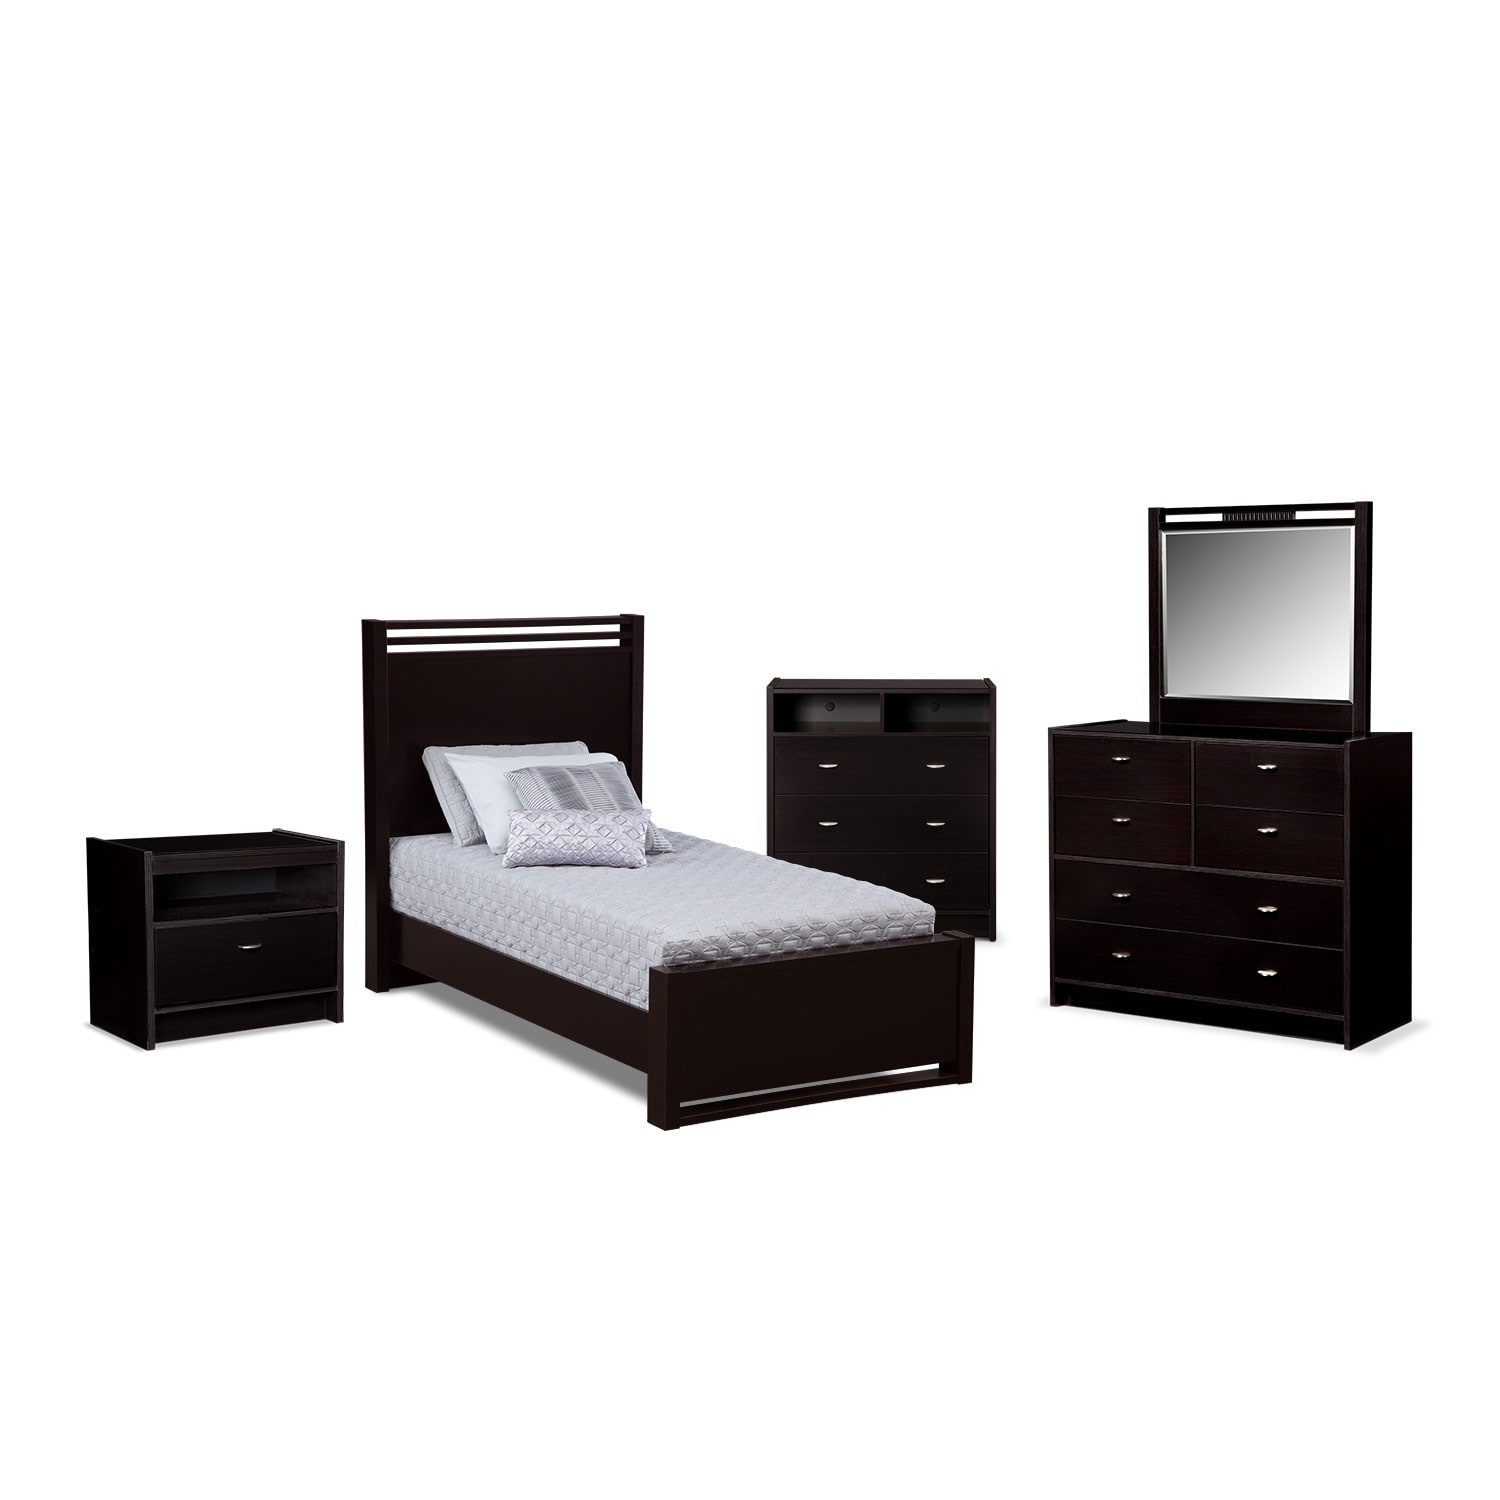 Kids Furniture - Bally 7-Piece Twin Bedroom Set with Media Chest - Espresso